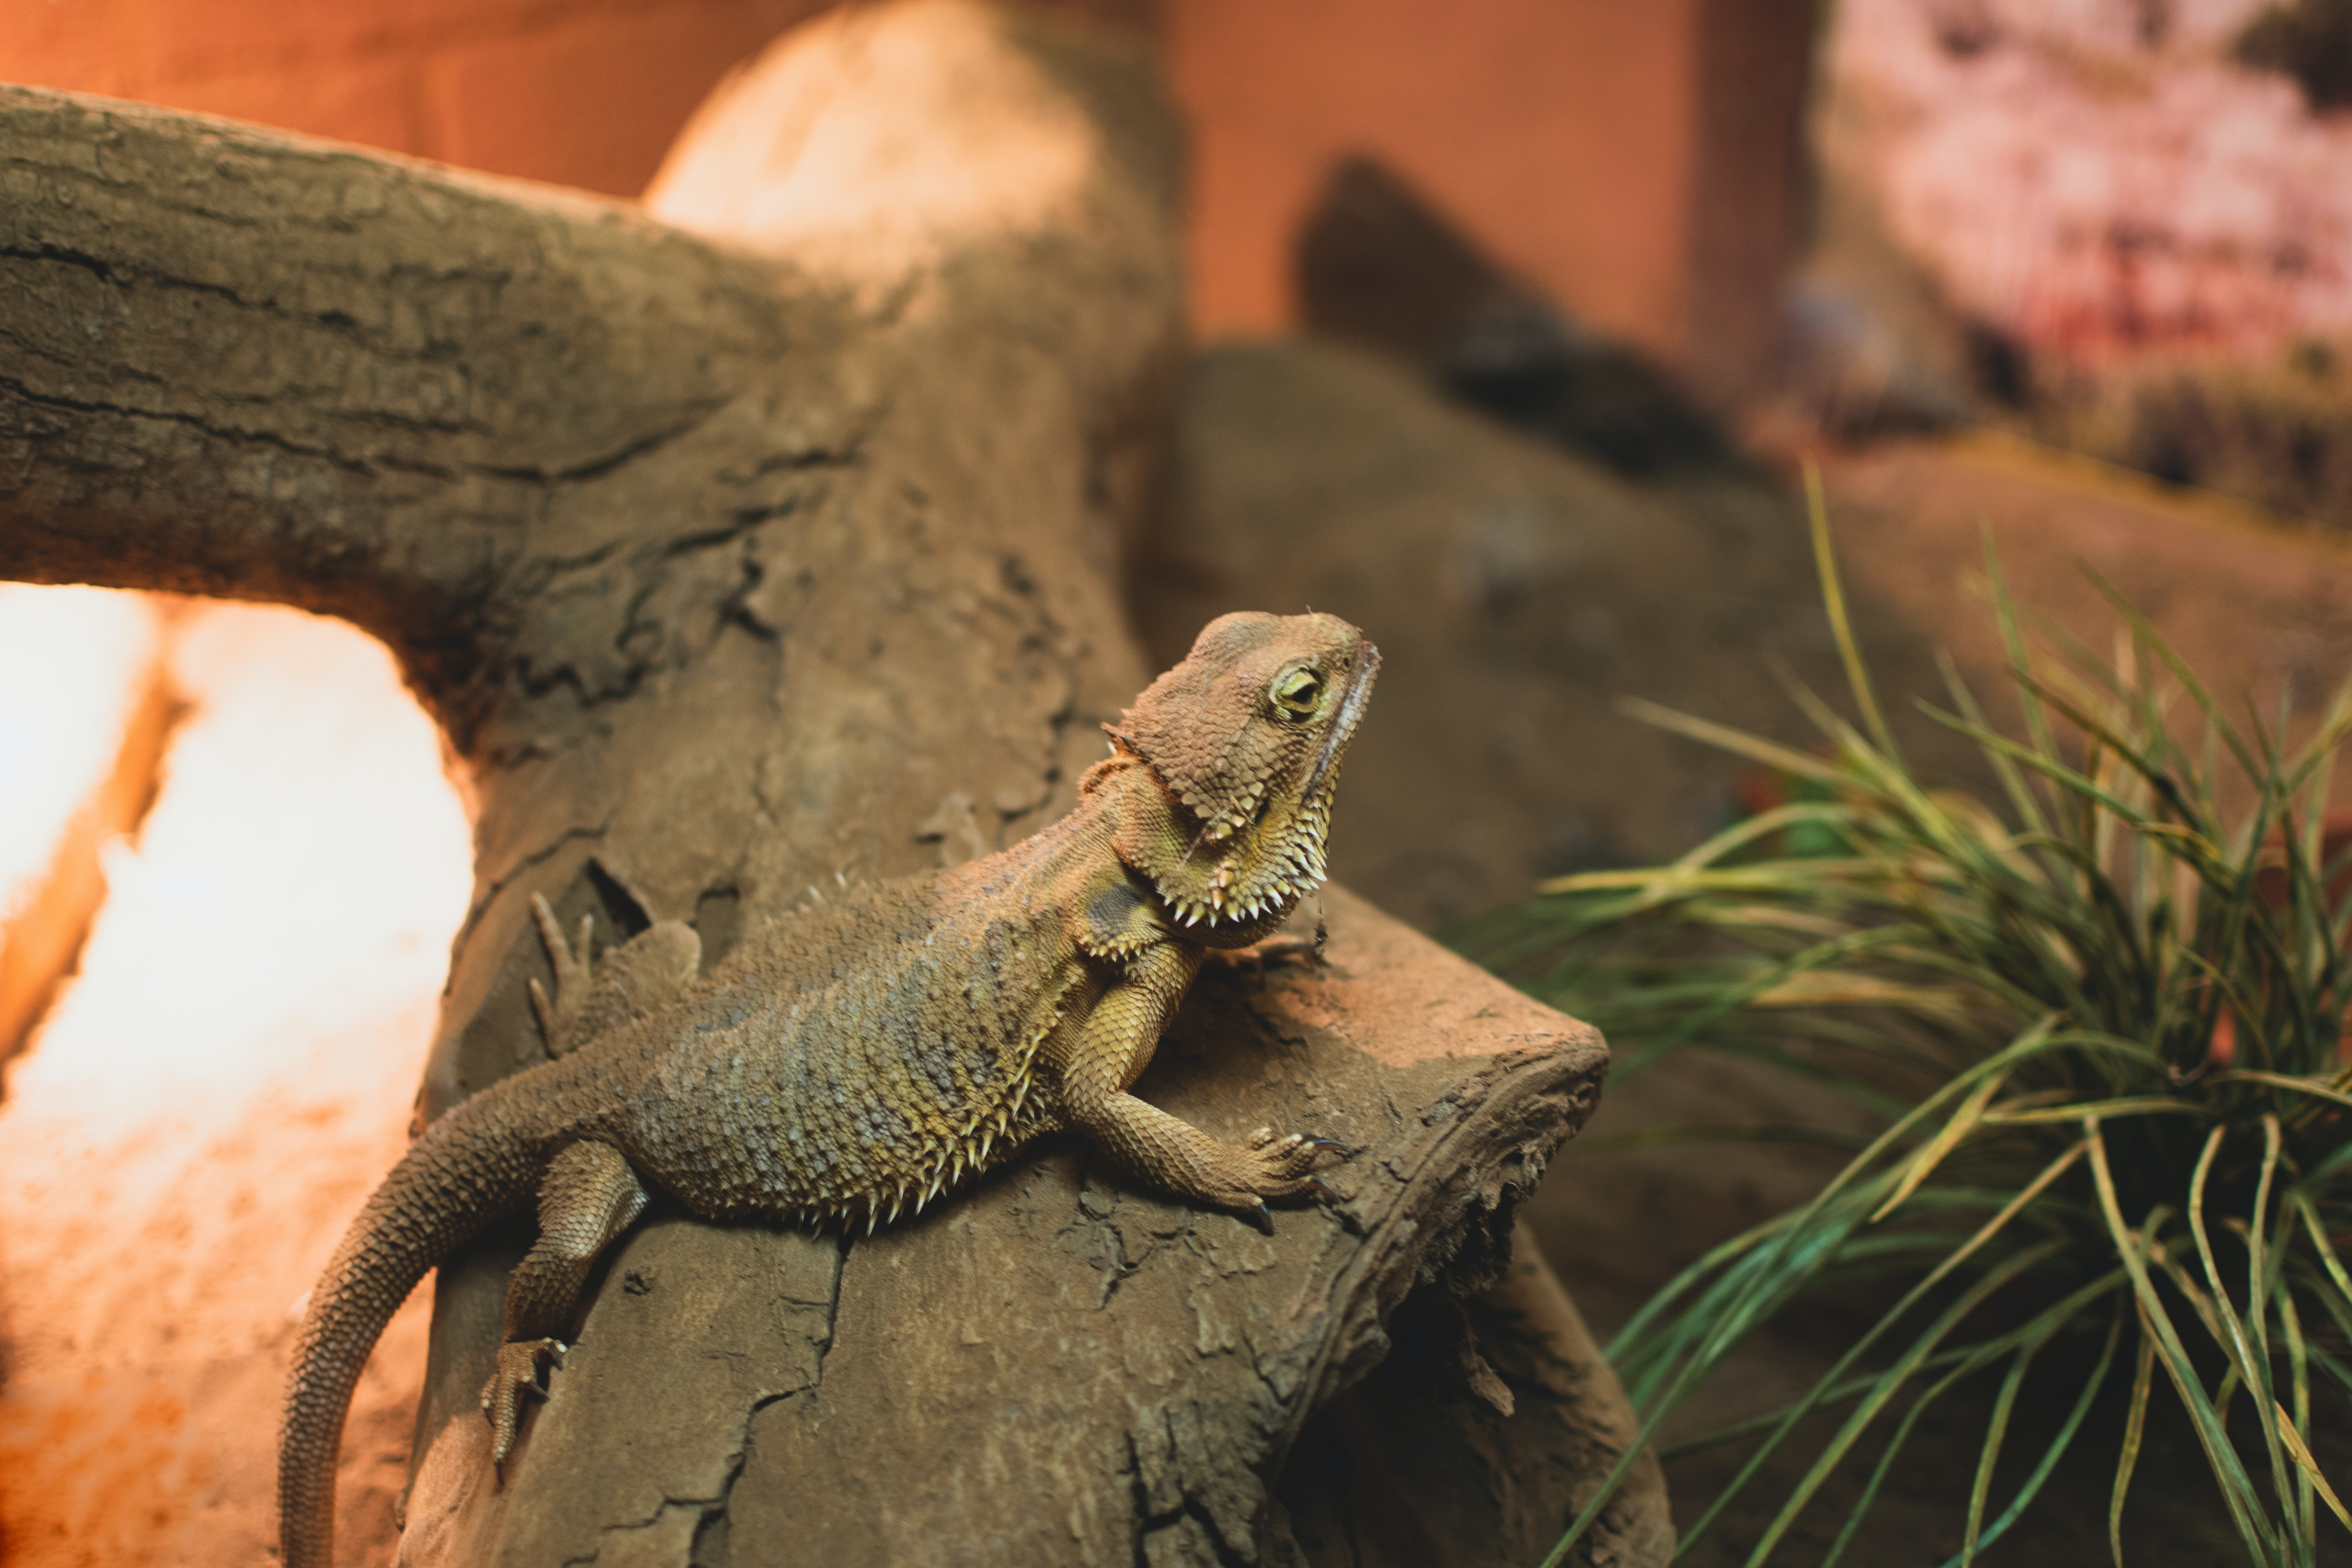 Bearded dragon lizard on a rough branch surrounded by plants, wood and rocks